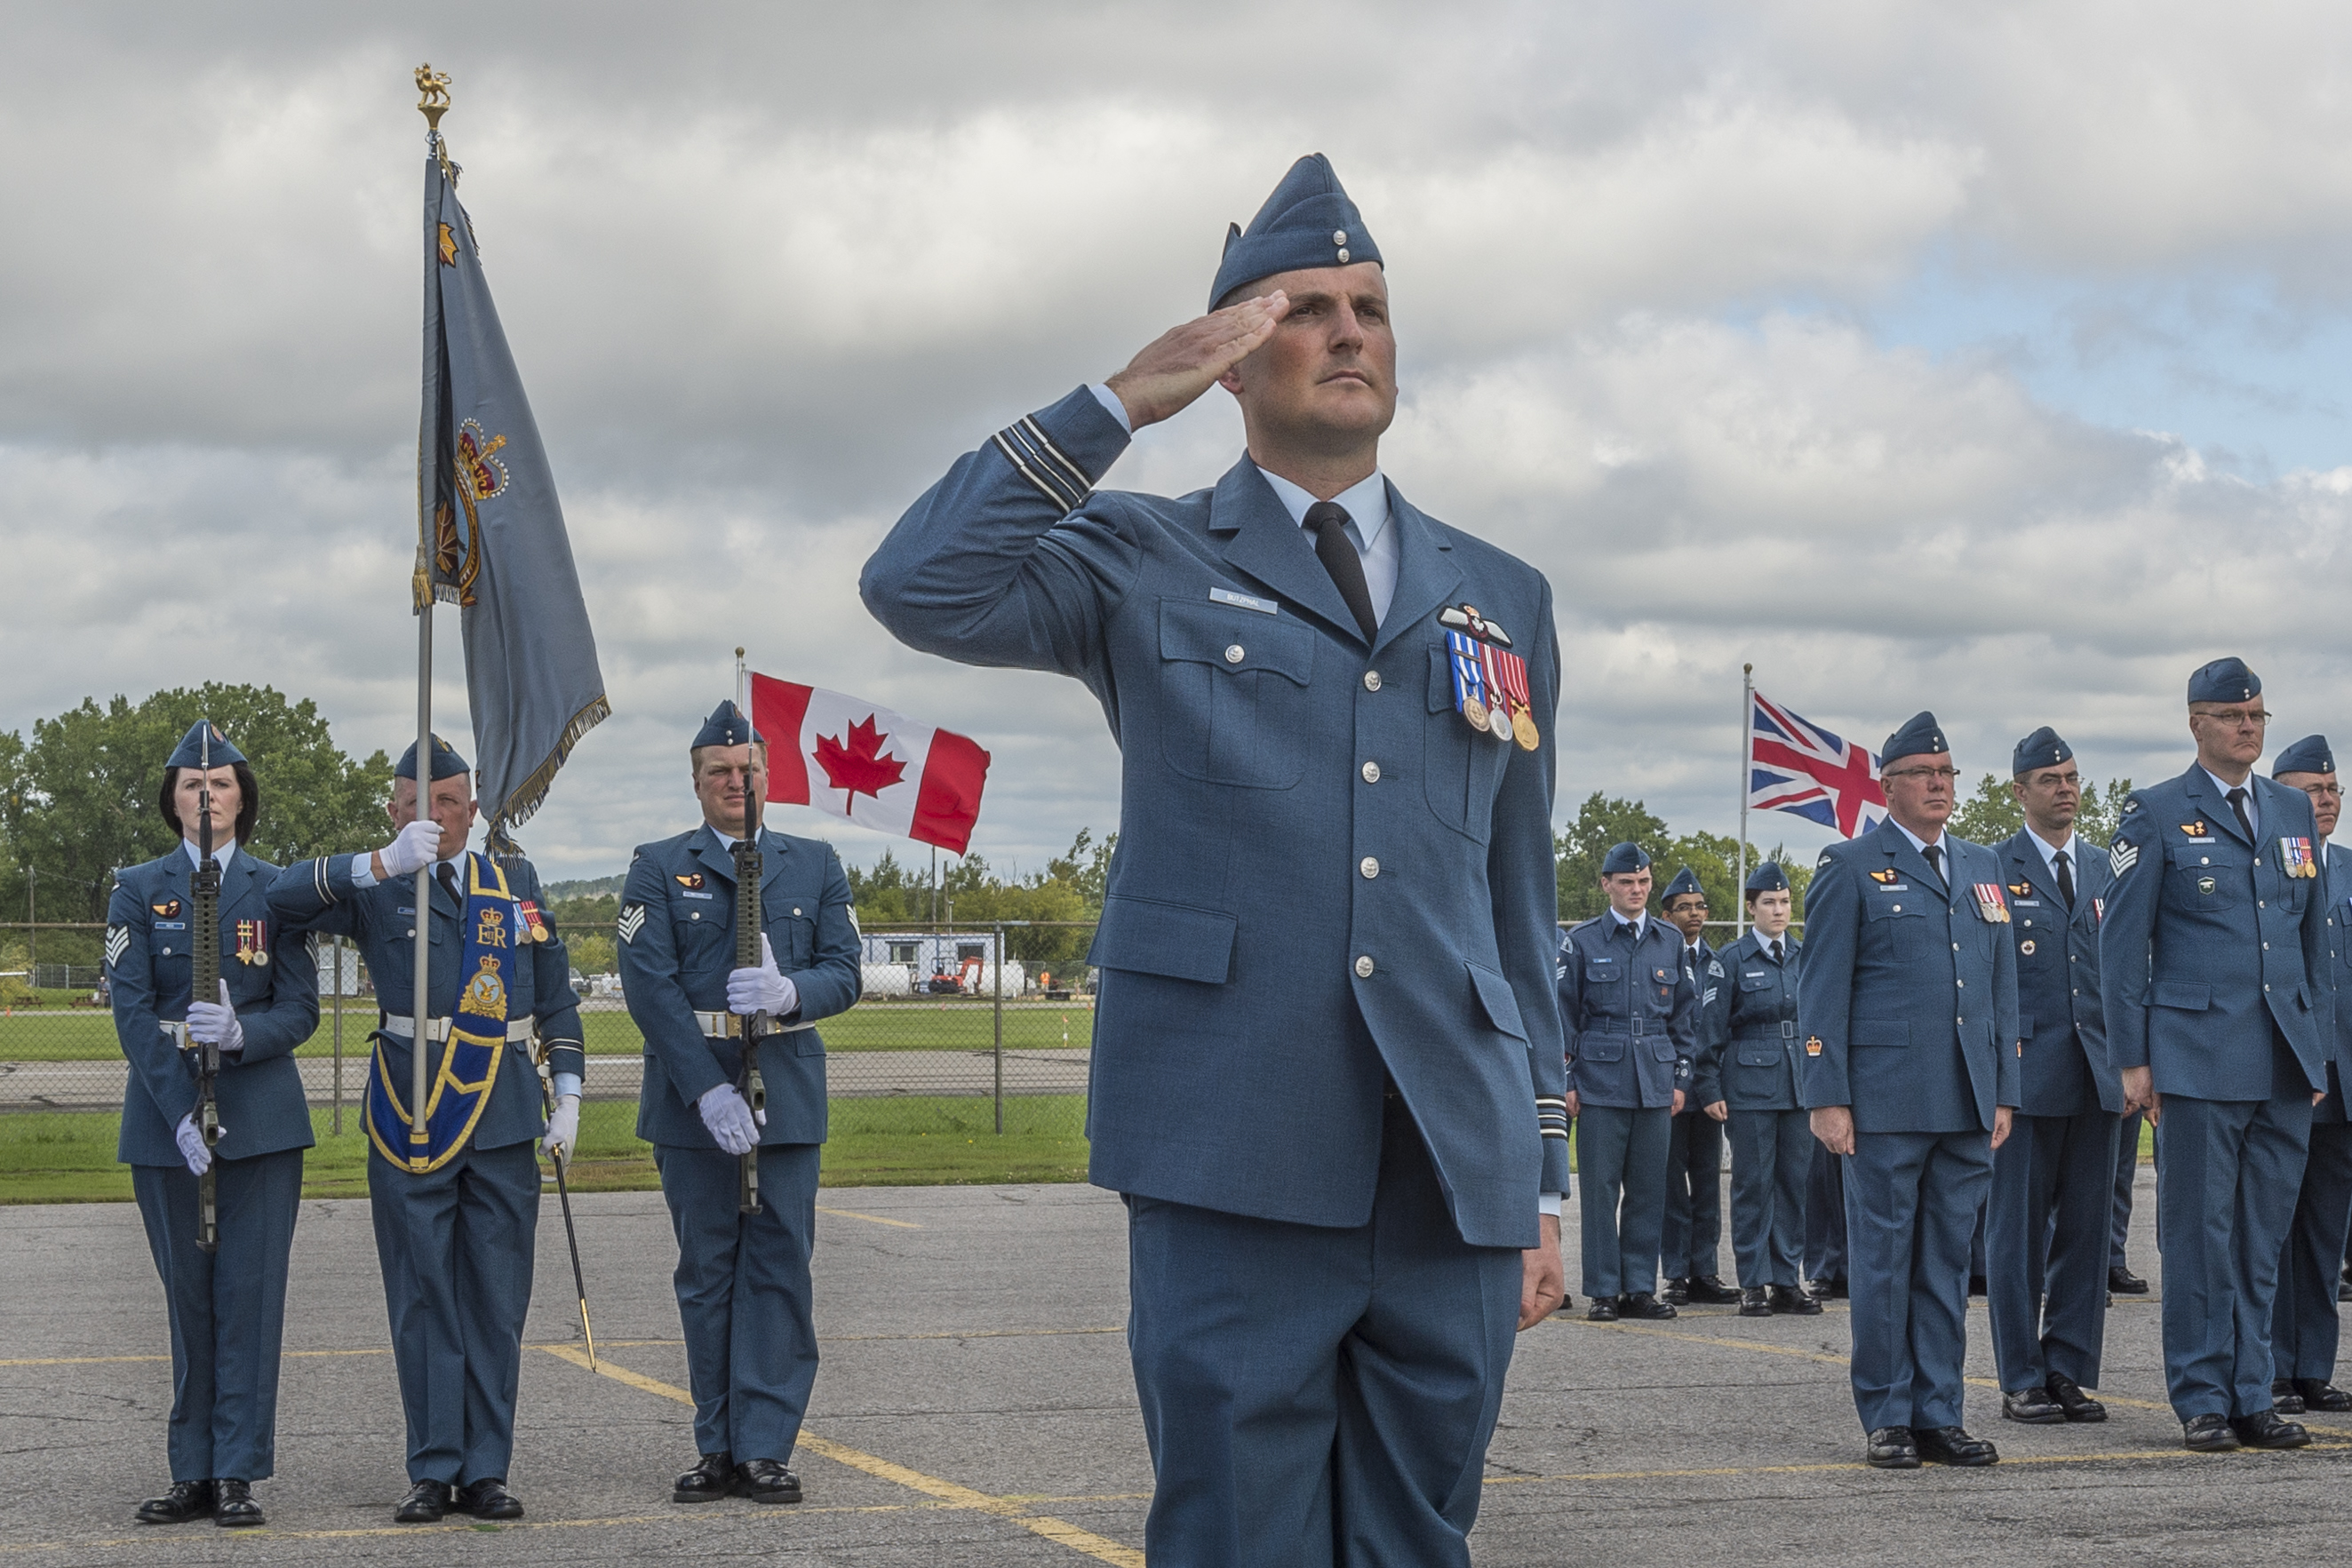 A man wearing an Air Force uniform salutes.